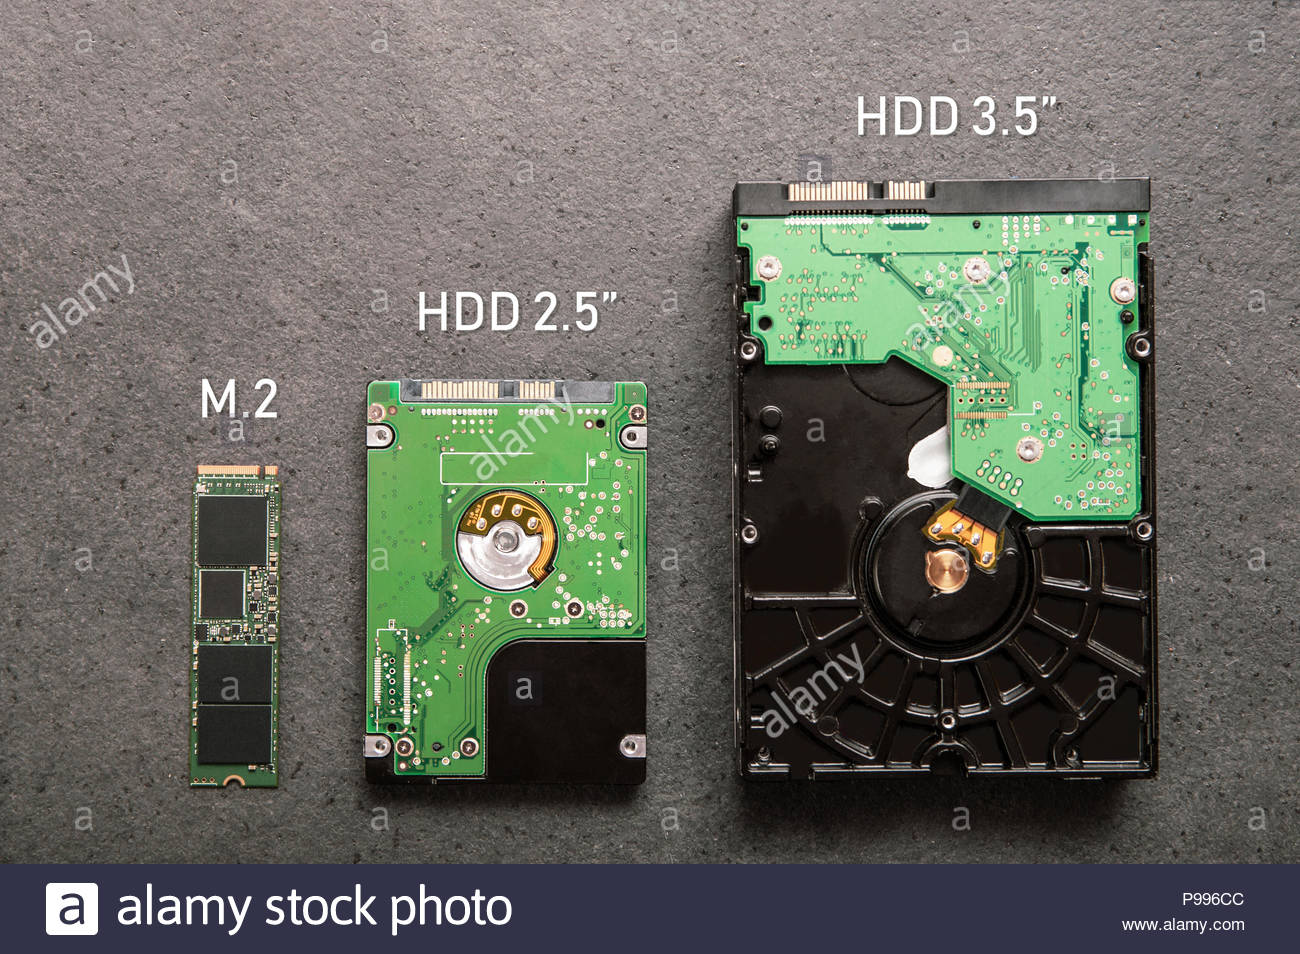 three-drives-arranged-on-a-stone-slab-comparison-of-ssd-m2-drive-with-hdd-25-and-35-P996CC.jpg